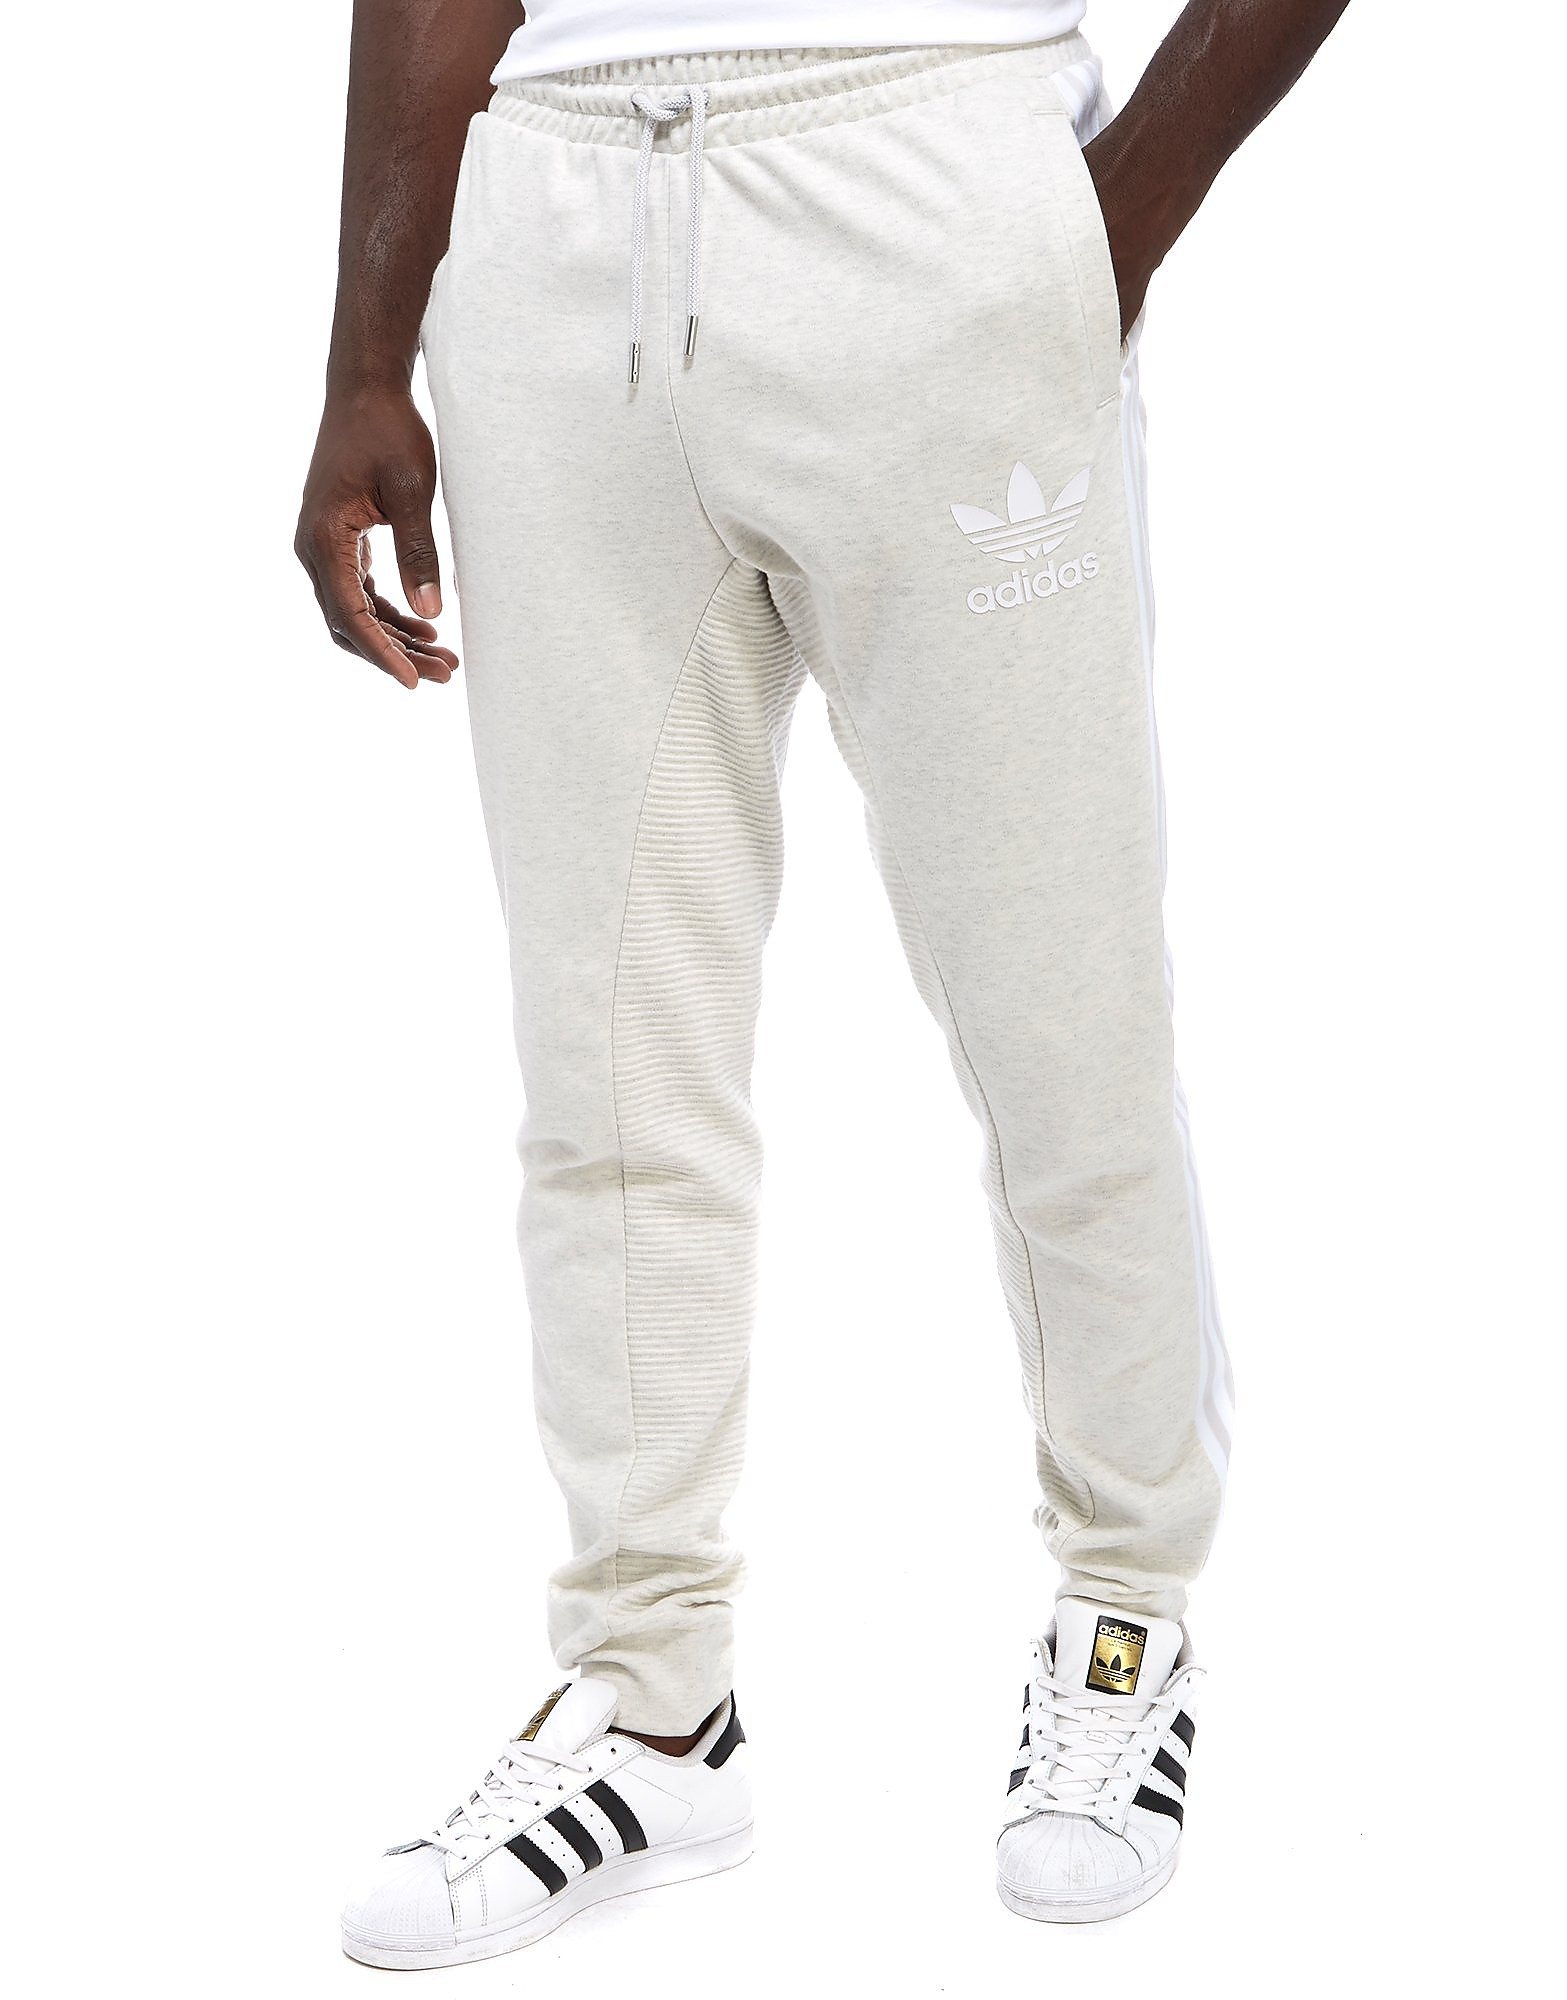 adidas Curated Sweat Pants